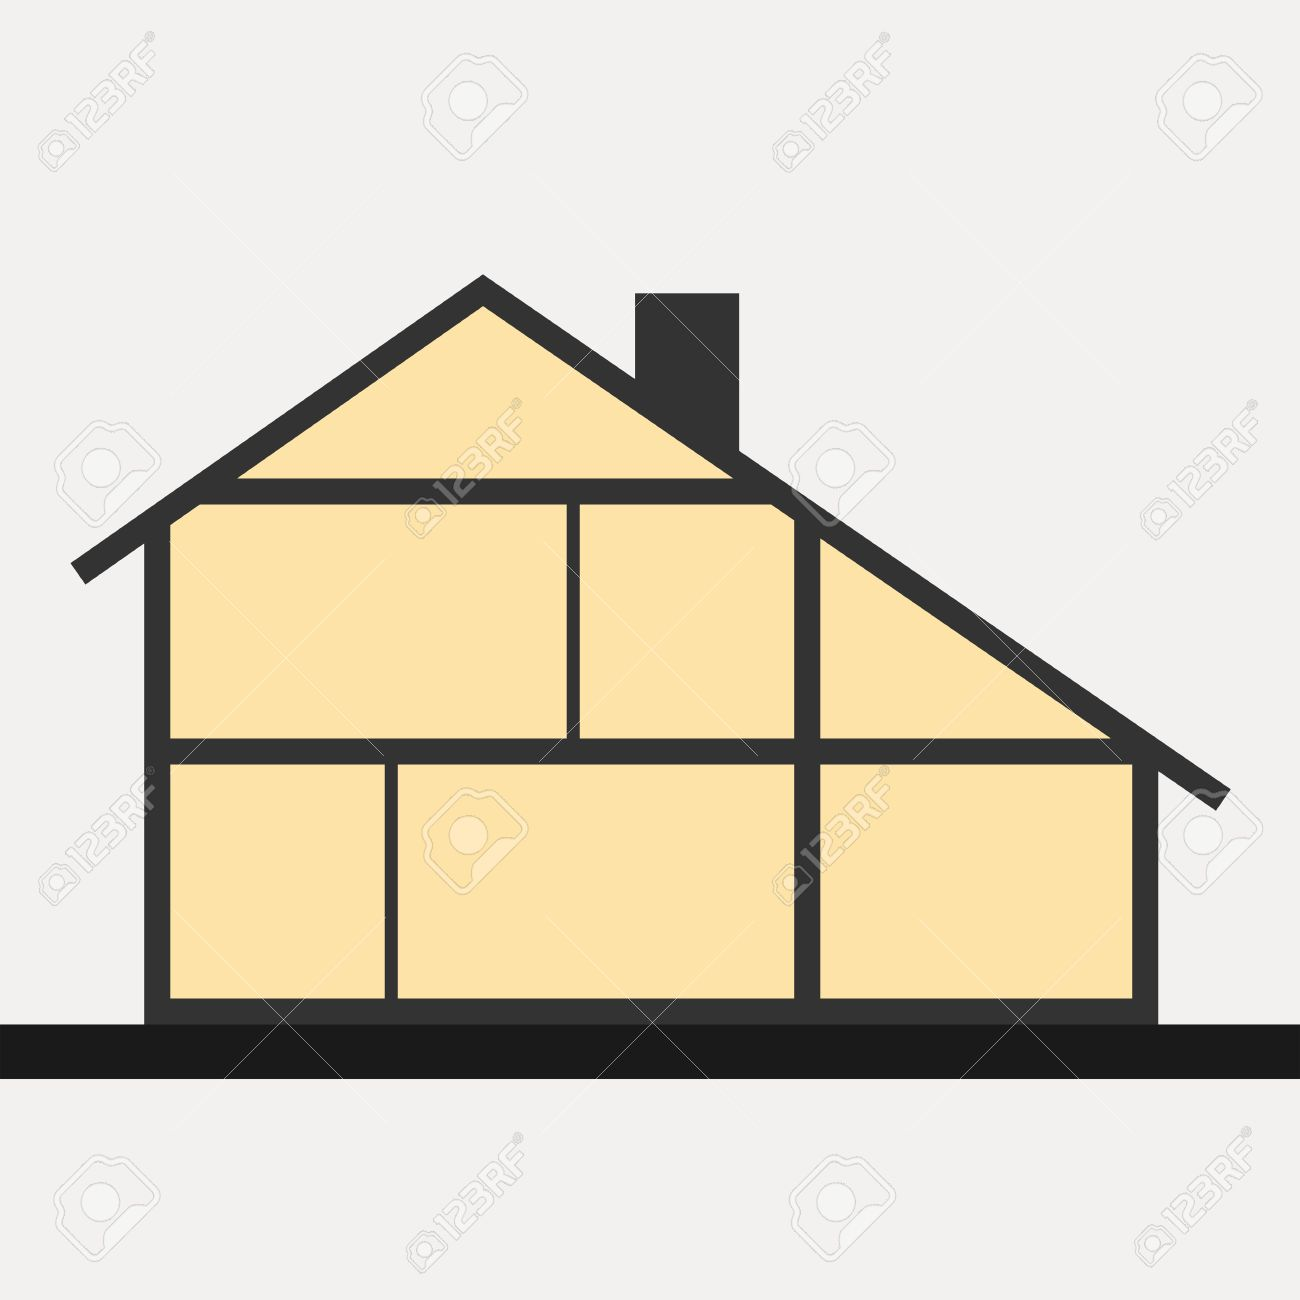 House in cut. Vertical cross section building. Vector illustration - 40064601